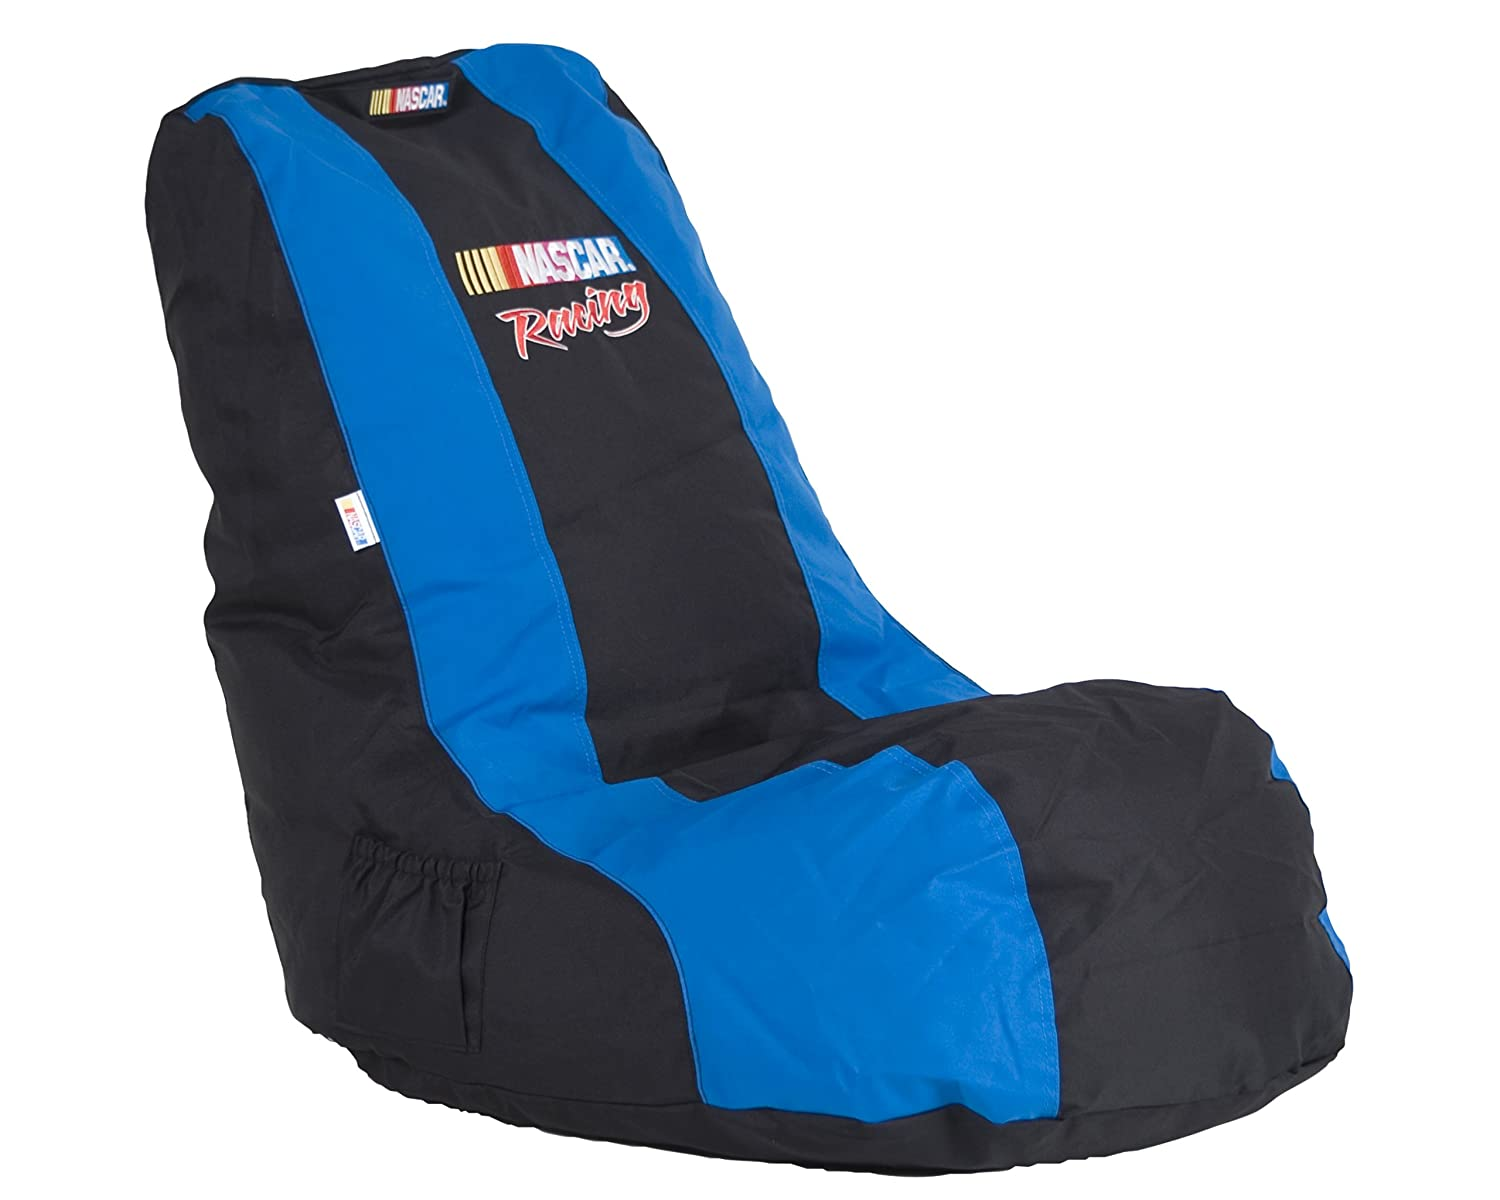 Ace Bayou, 94653, Officially licensed Nascar Racing Video Bean Bag Chair, Black with Blue, 6 cu